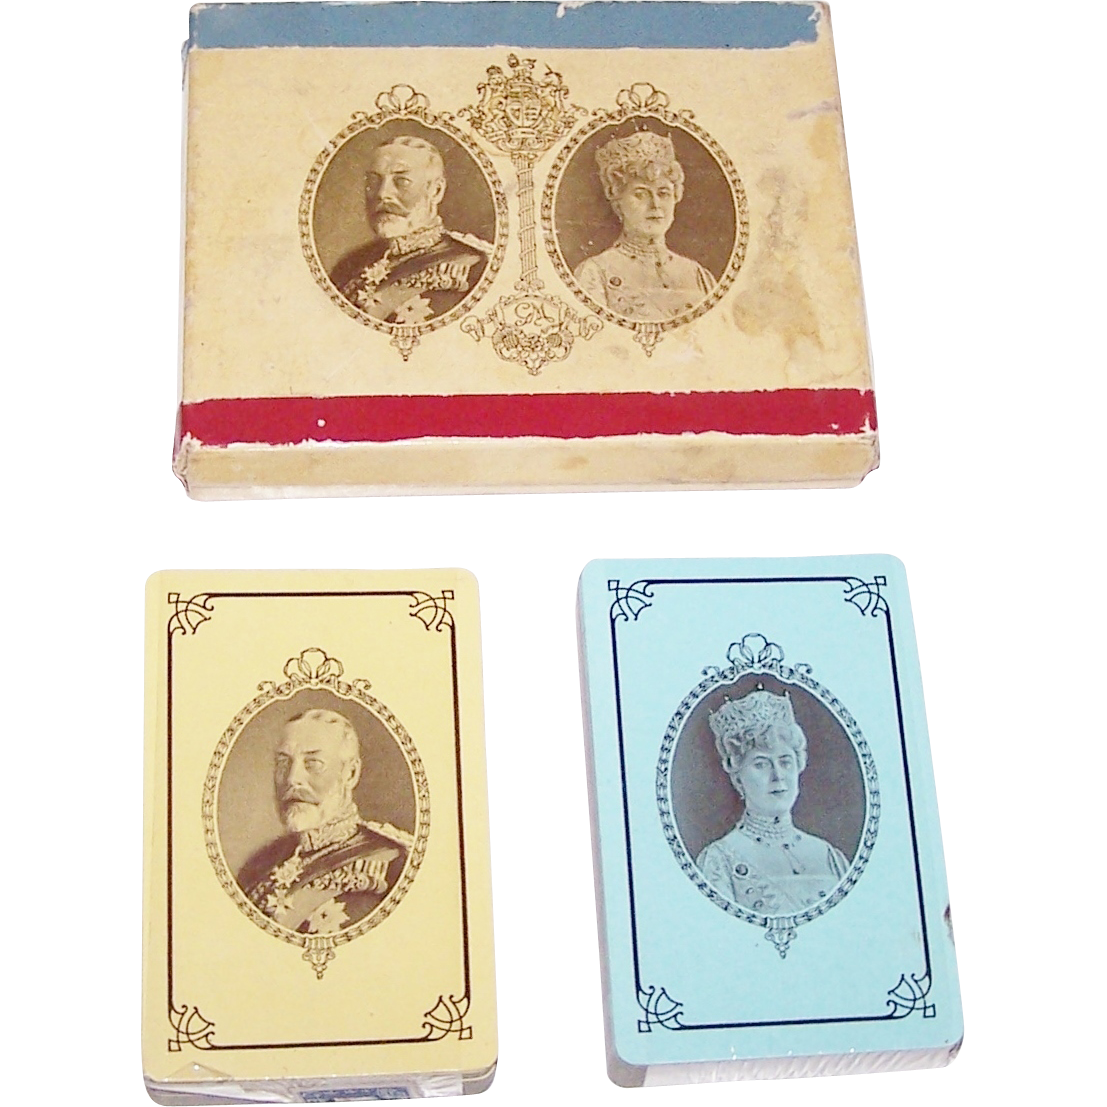 "Double Deck Canadian Playing Card Co. ""Silver Jubilee King George V"" Playing Cards, Commemorating 25th Anniversary of Ascendancy of King George V and Queen Mary, c.1935"